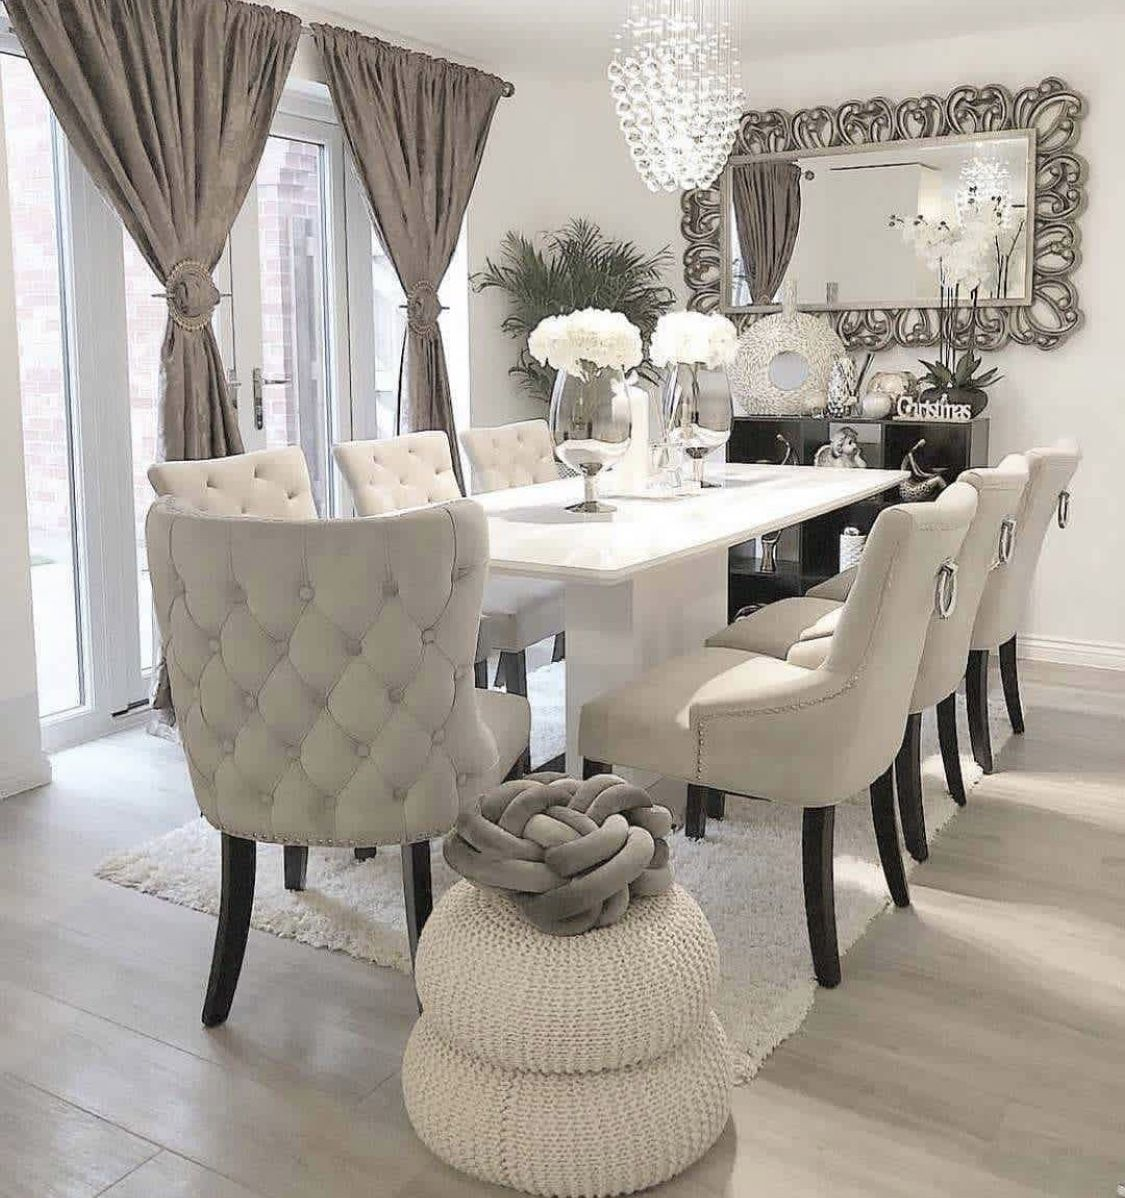 Minimalist Dining Room Ideas Designs Photos Inspirations: Pin By Sha-Toya Randall On Glam Living/Dining Room